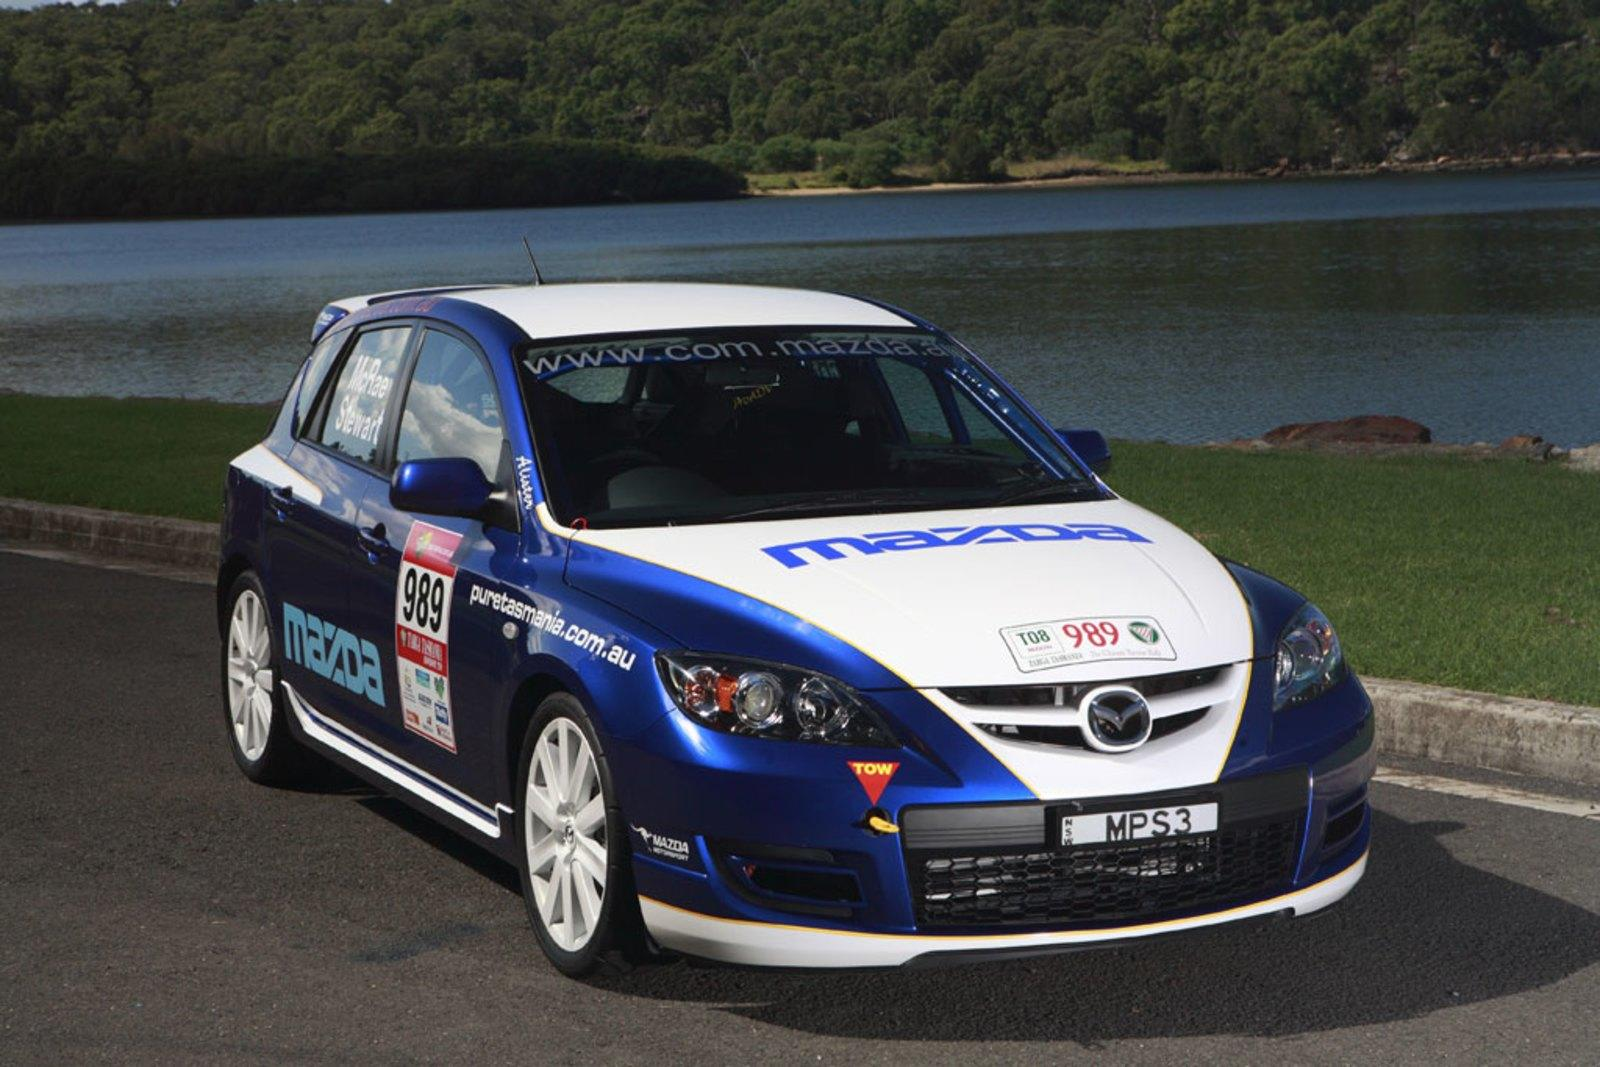 2008 Mazda3 MPS Rally Car Review - Top Speed